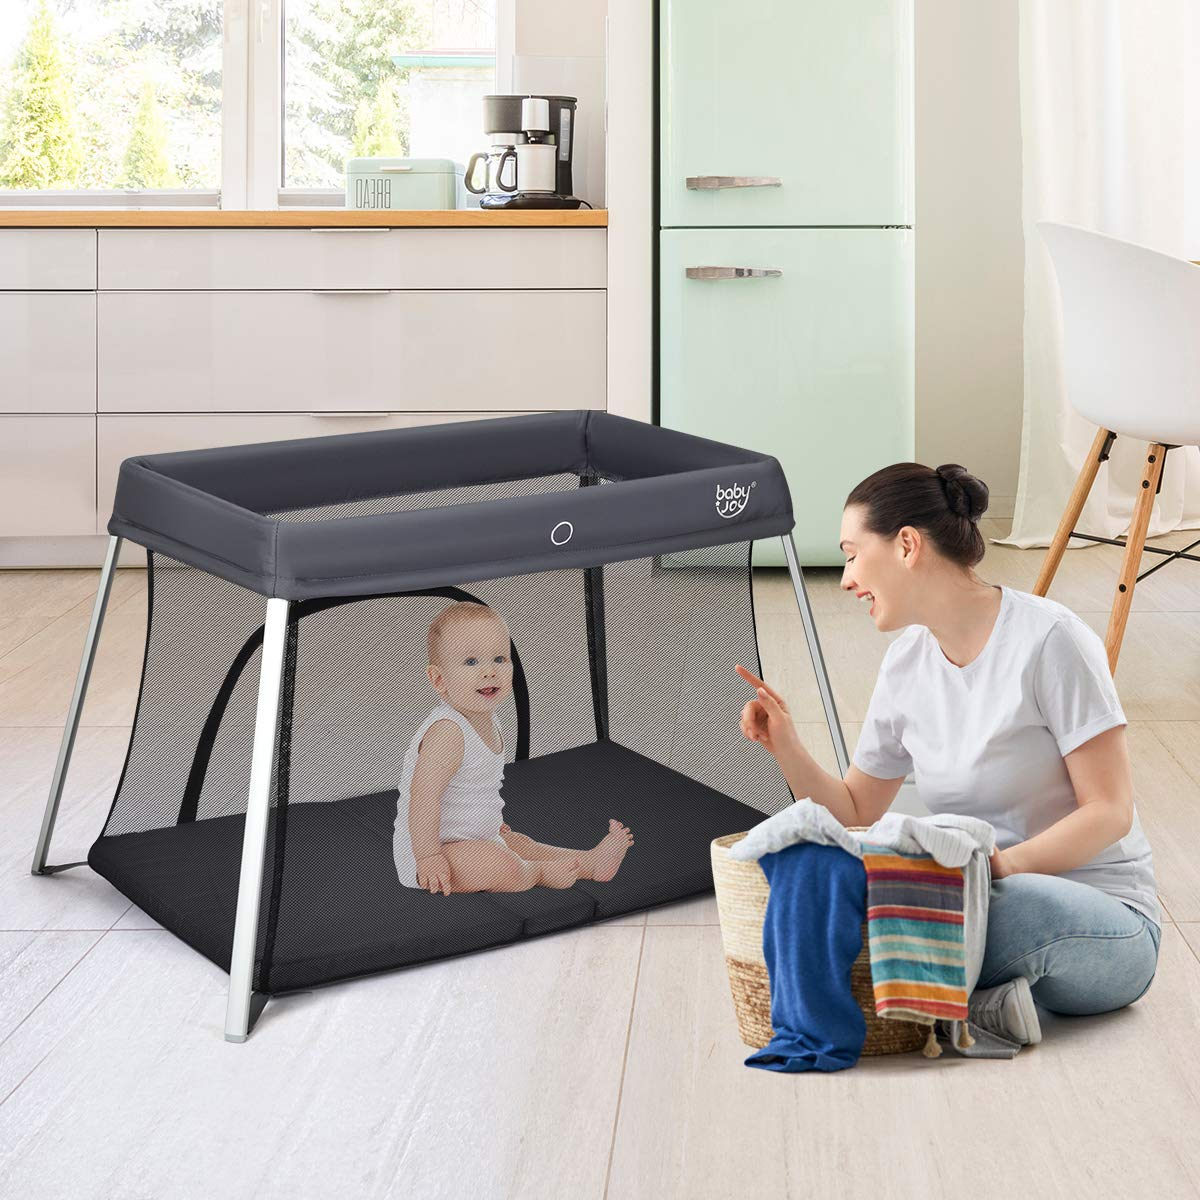 BABY JOY Baby Foldable Travel Crib, 2 in 1 Portable Playpen with Soft Washable Mattress, Side Zipper Design, Lightweight Installation-Free Home Playard with Carry Bag, for Infants Toddlers Grey